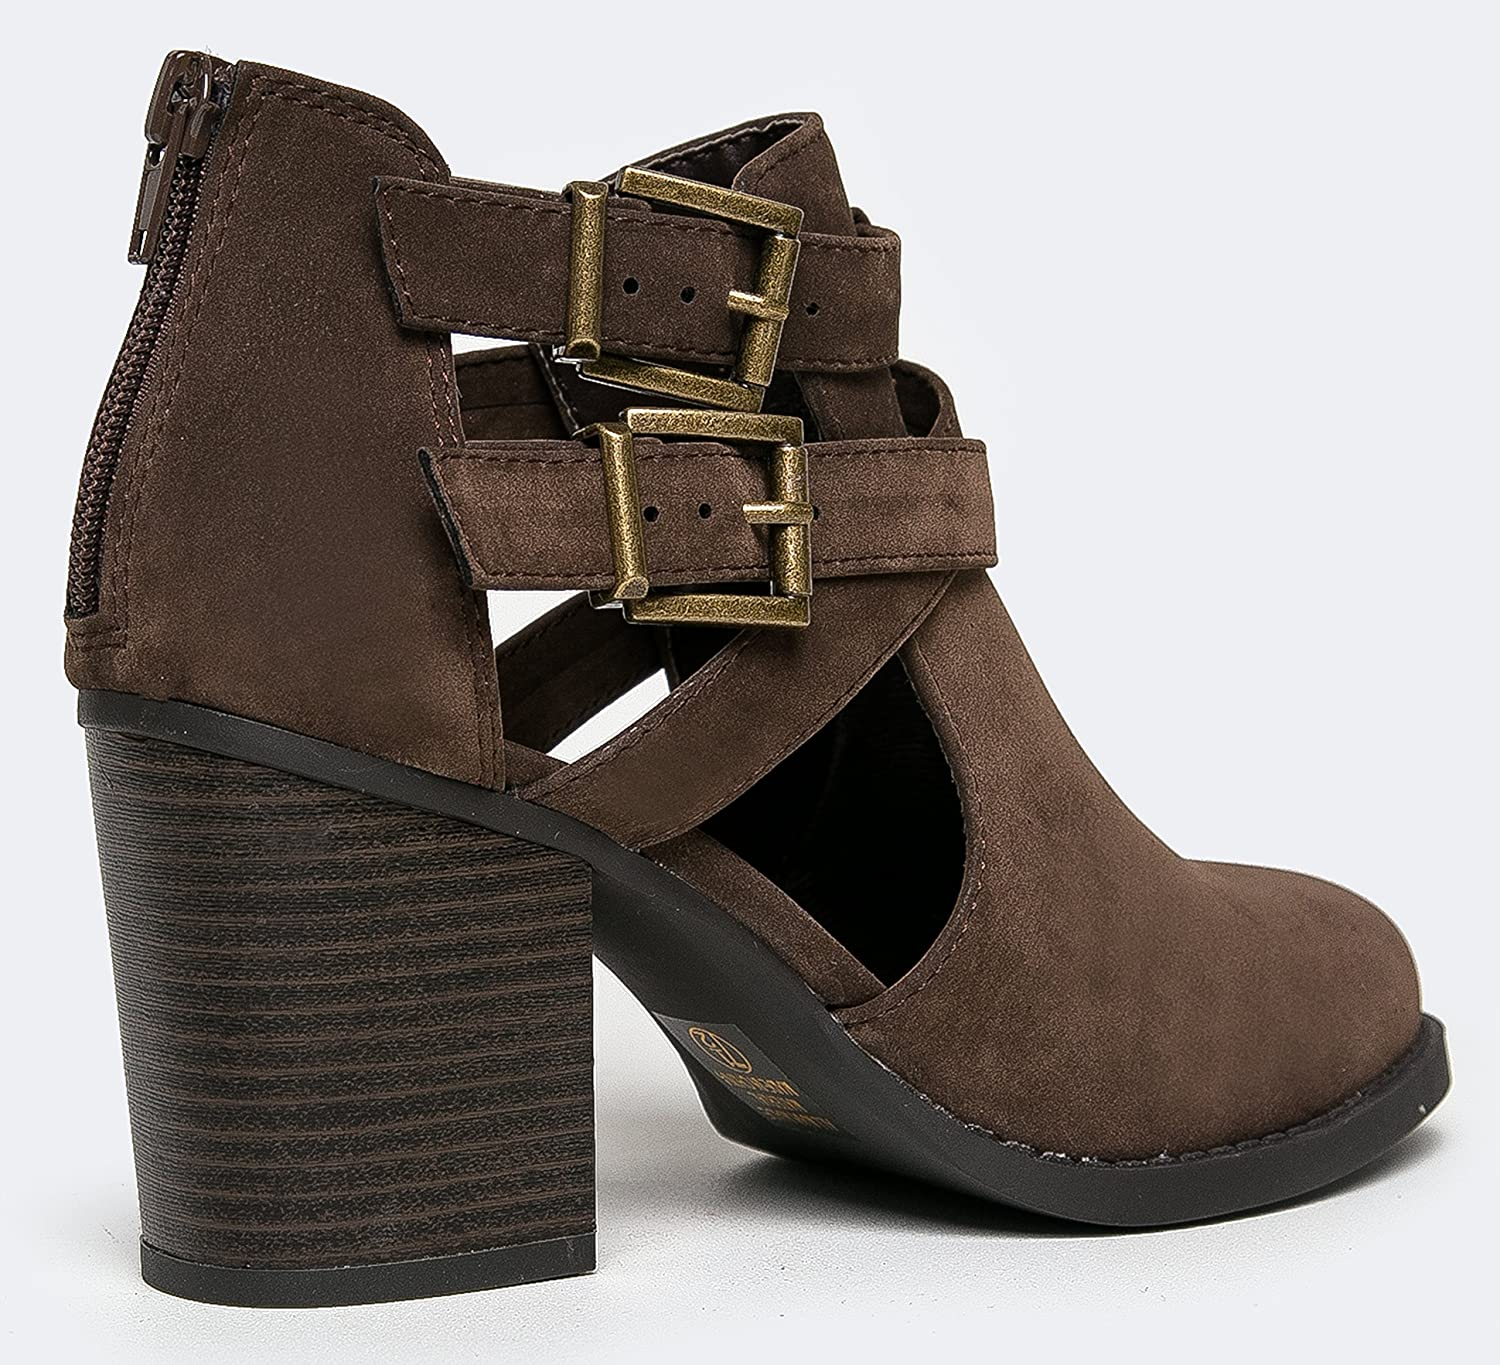 ea232b0c8 Amazon.com | J. Adams Cut Out Buckle Ankle Bootie - Low Stacked Wood Heel  Western Round Boot - Vegan Leather Sammi | Ankle & Bootie